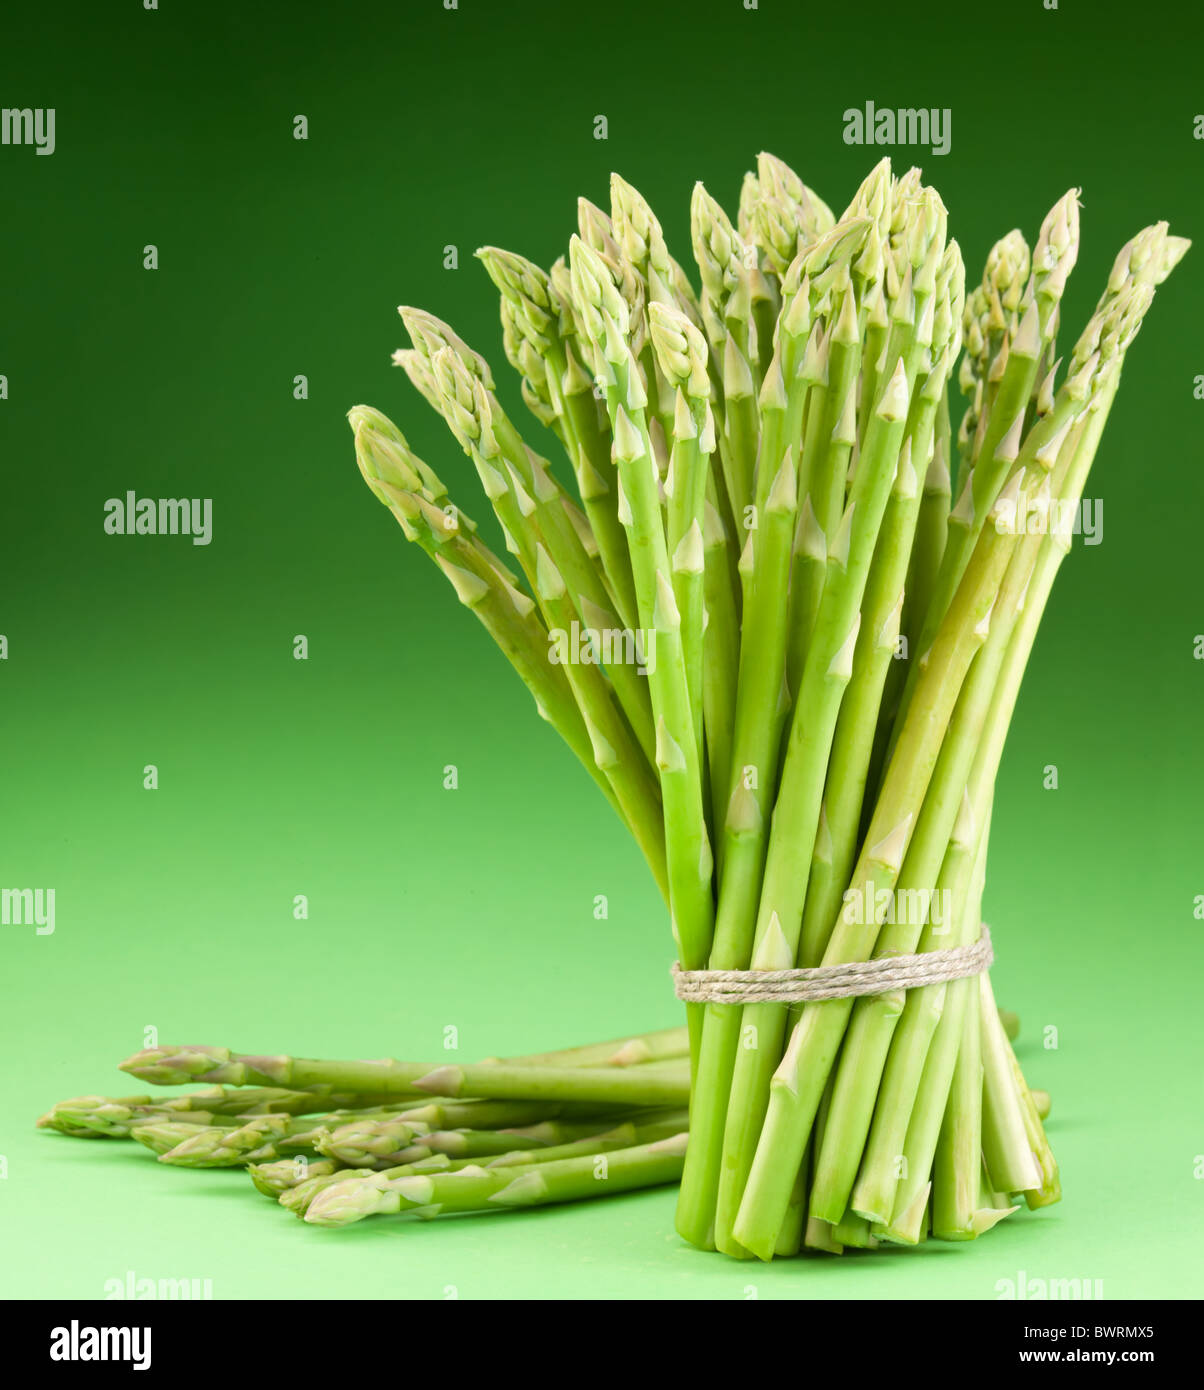 Sheaf of asparagus on a green background. - Stock Image